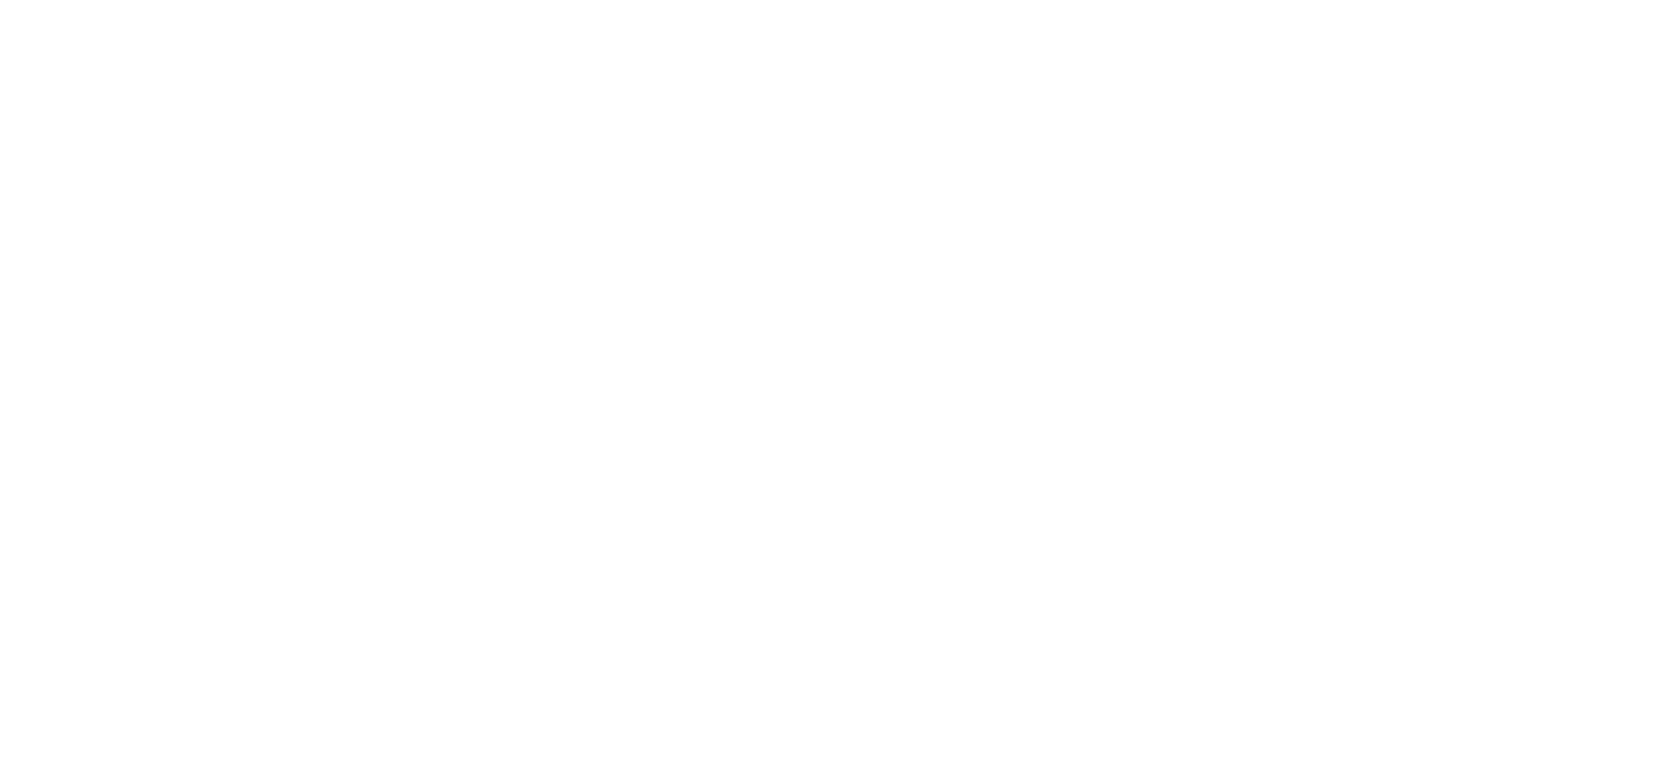 Volleyball Celtique